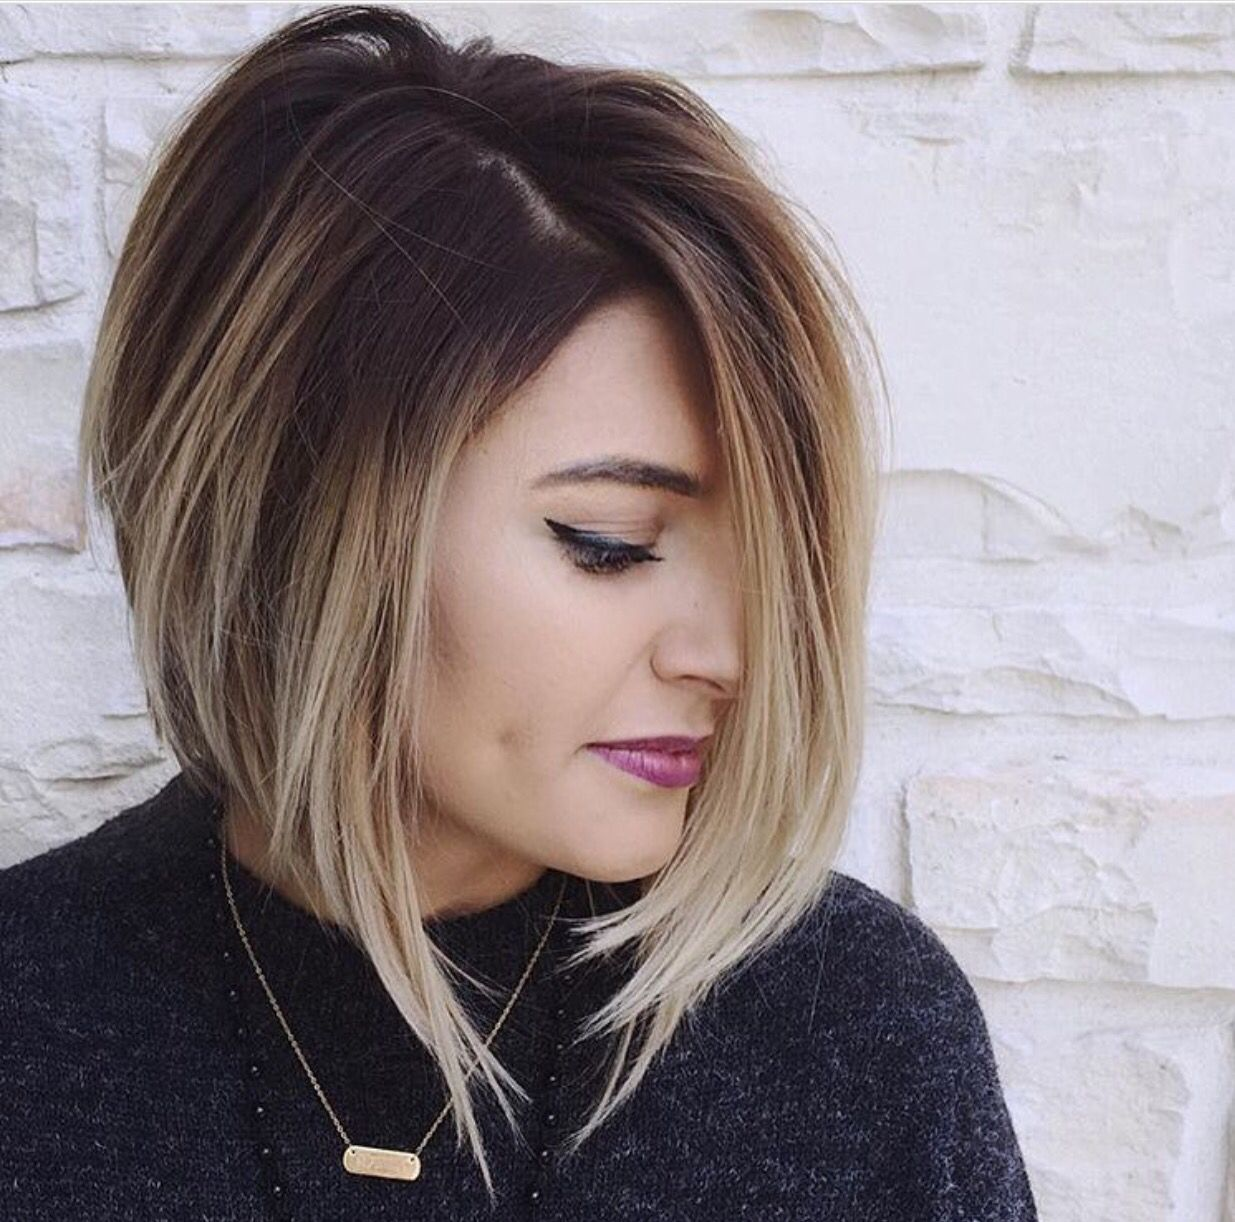 31 Short Bob Hairstyles To Inspire Your Next Look Hair Make Up